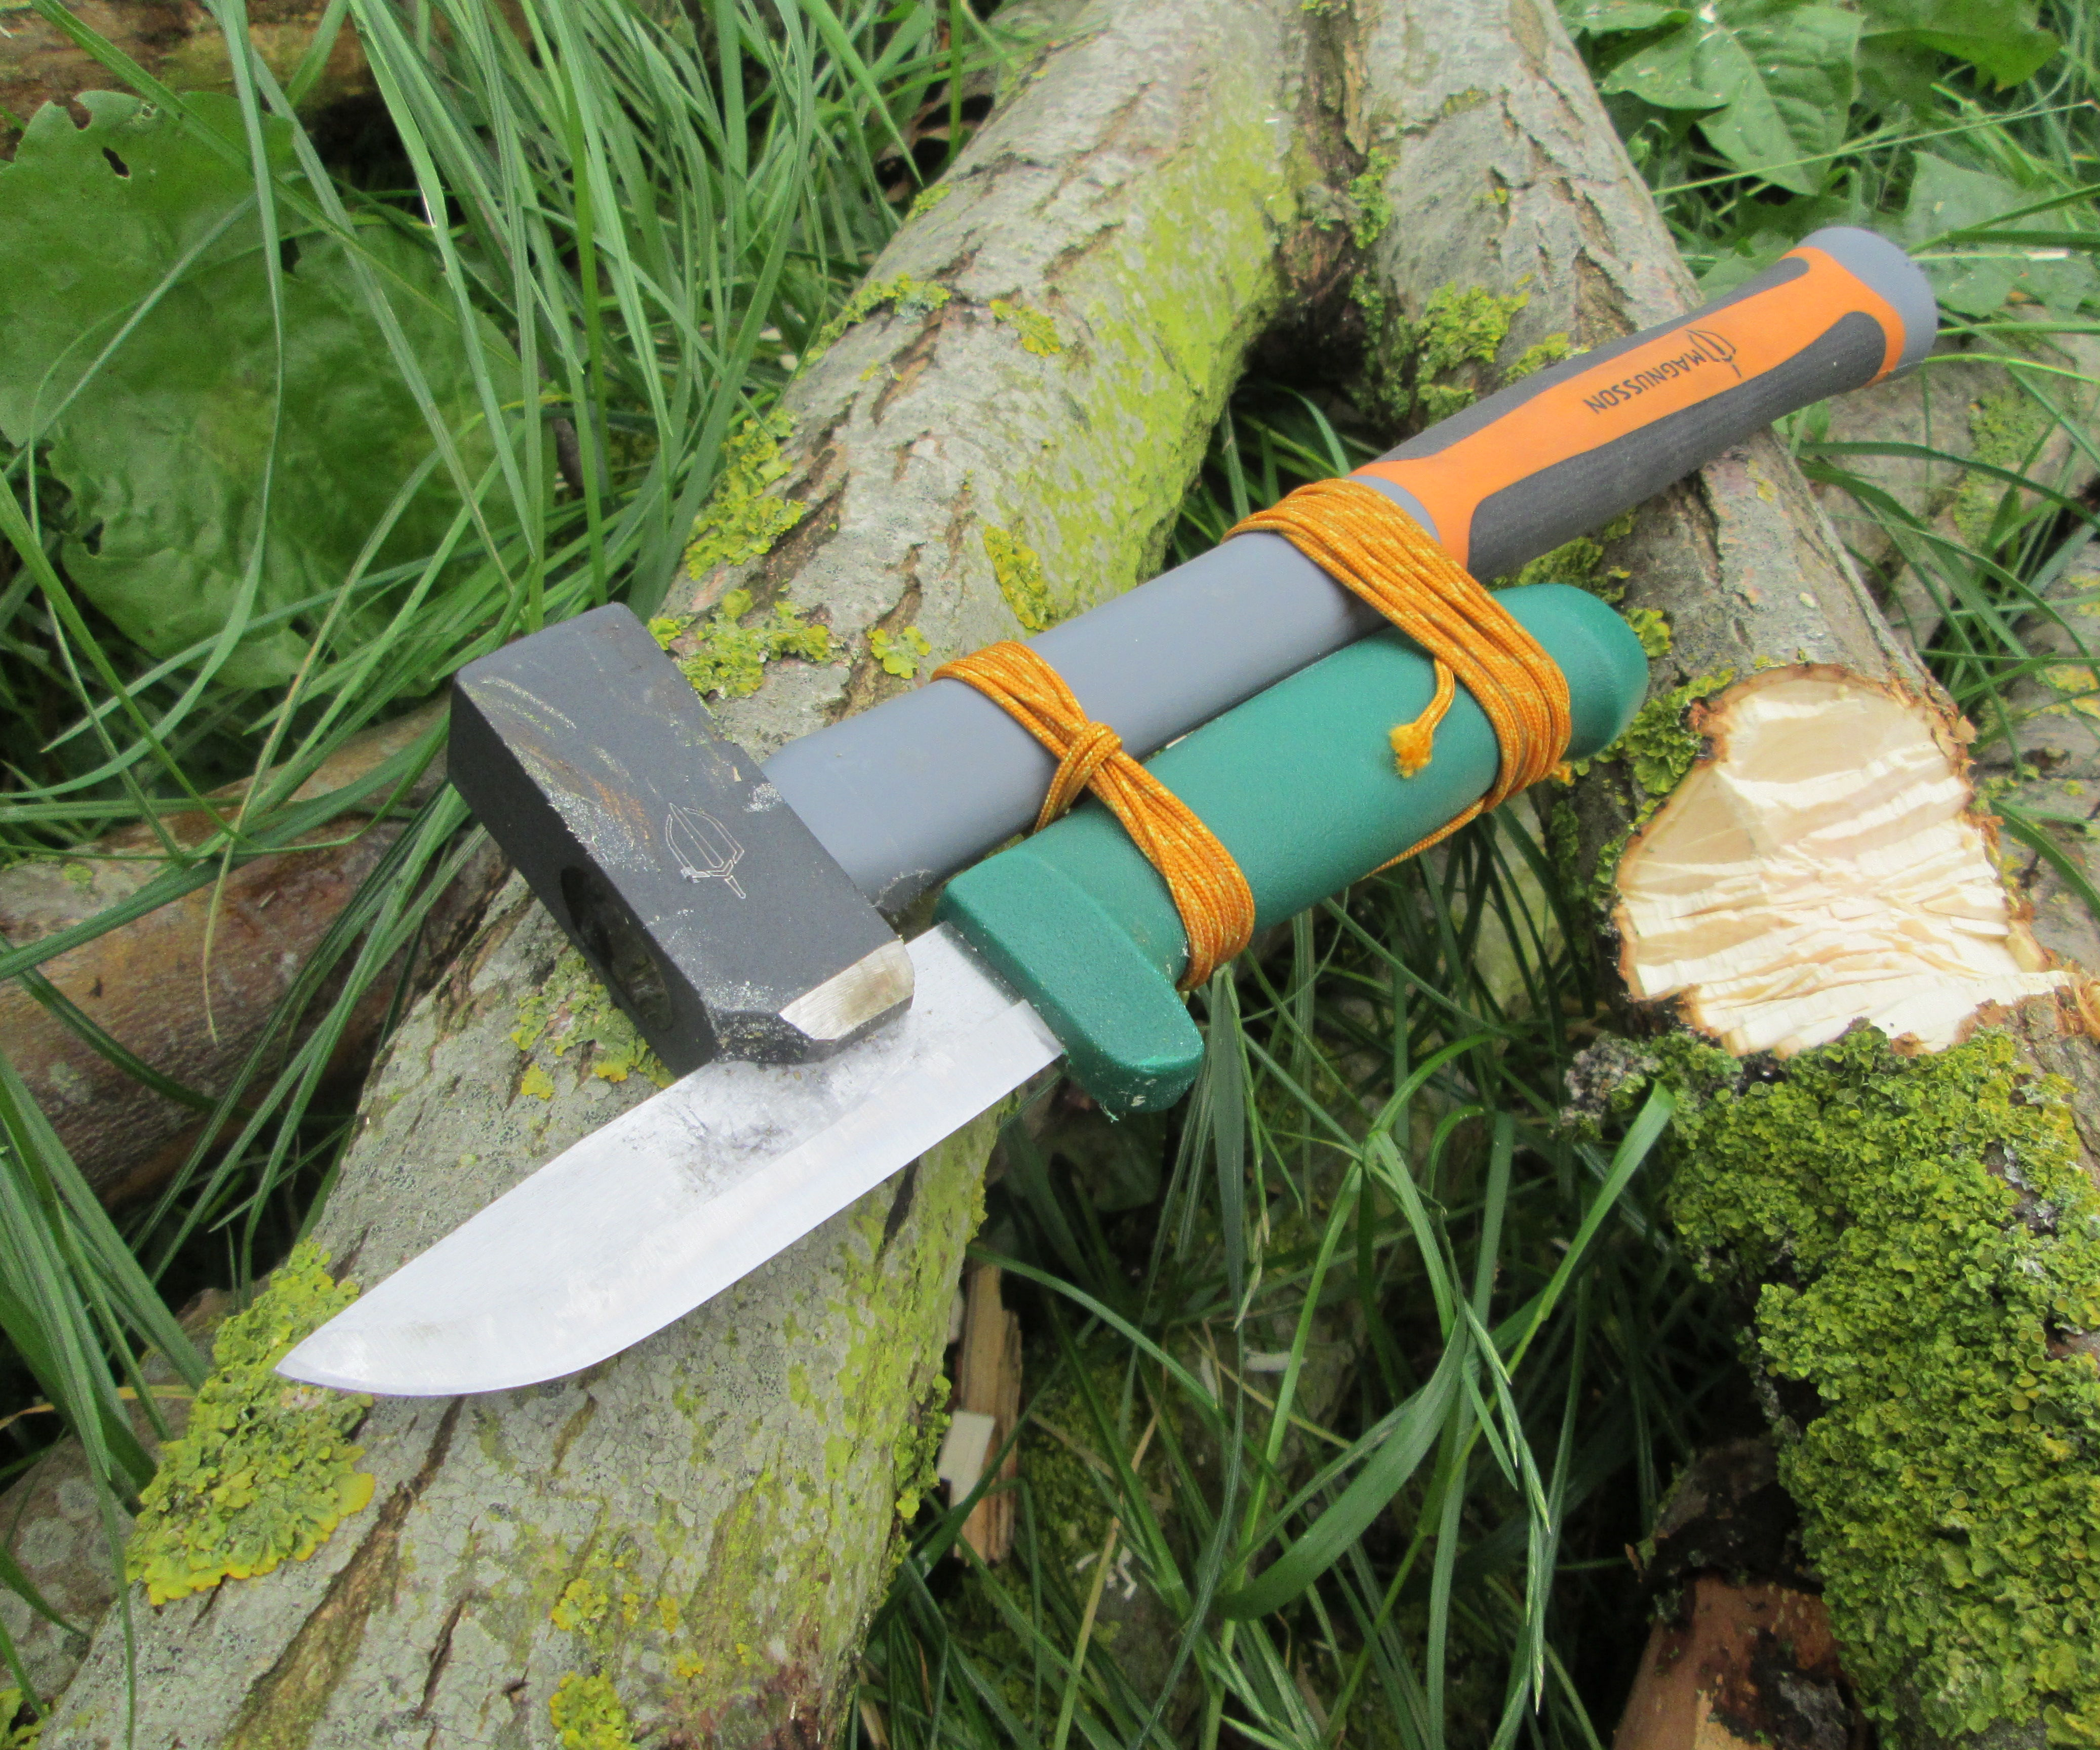 The Bayonax - when Thor meets bushcraft